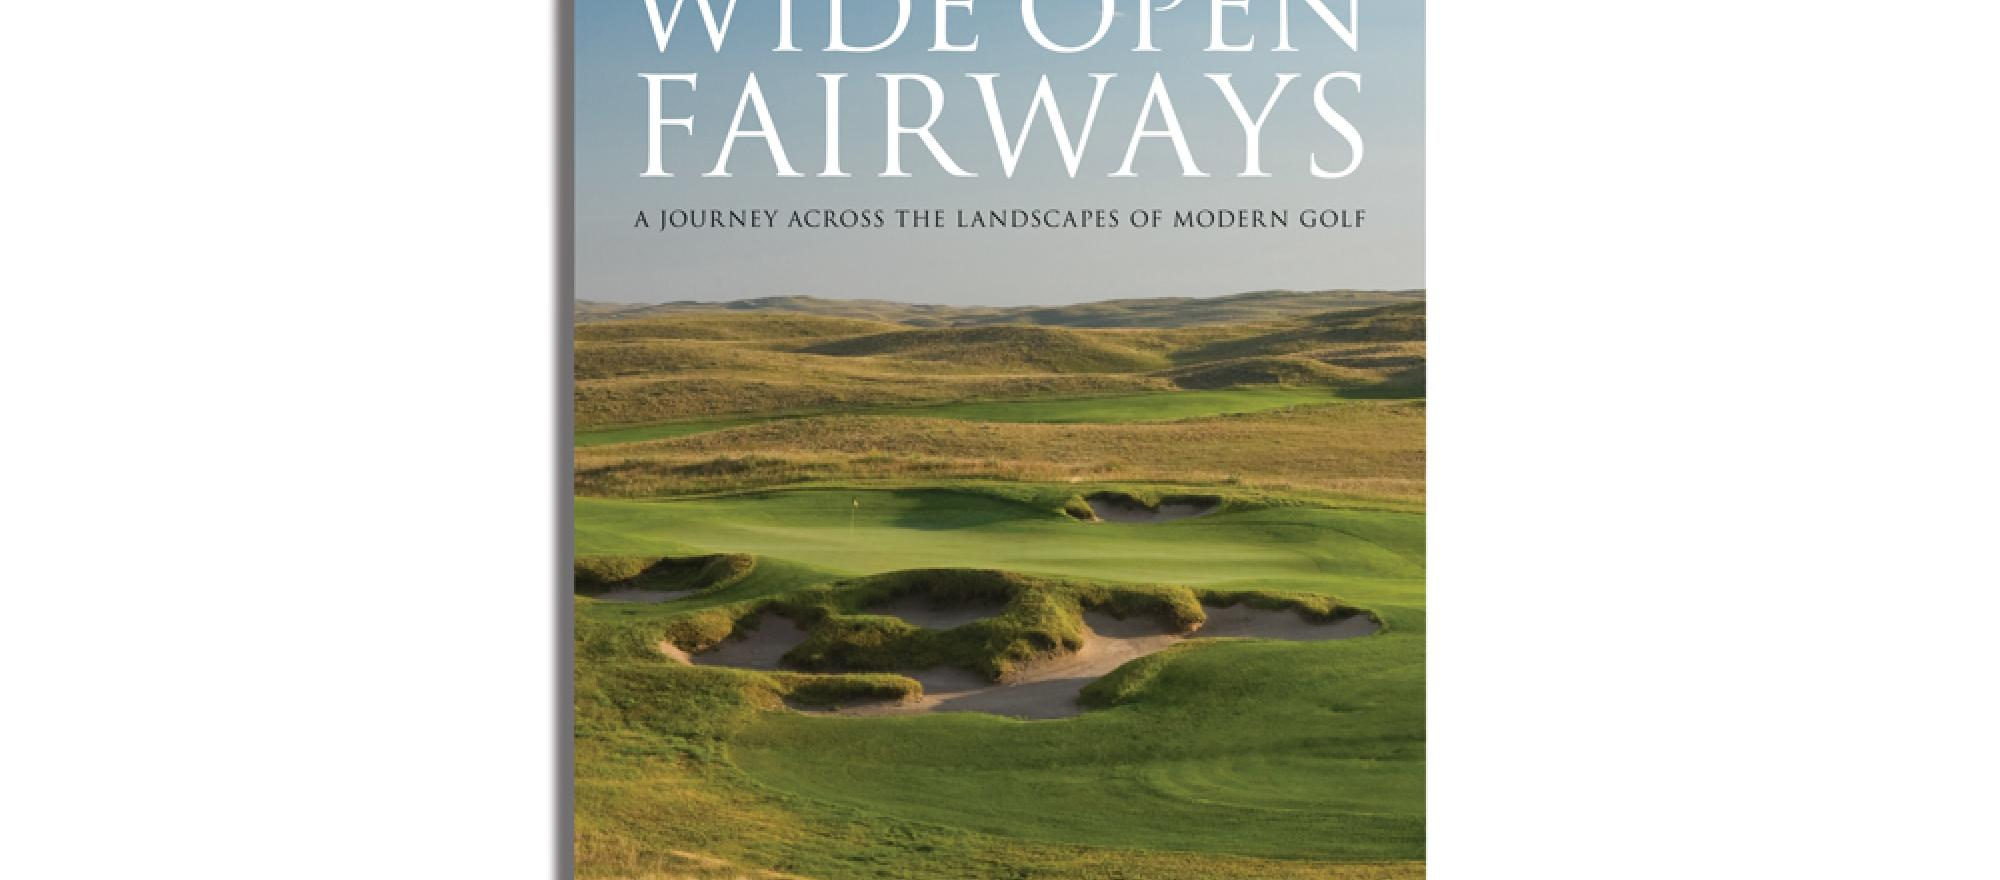 Wide Open Fairways by Bradley S. Klein